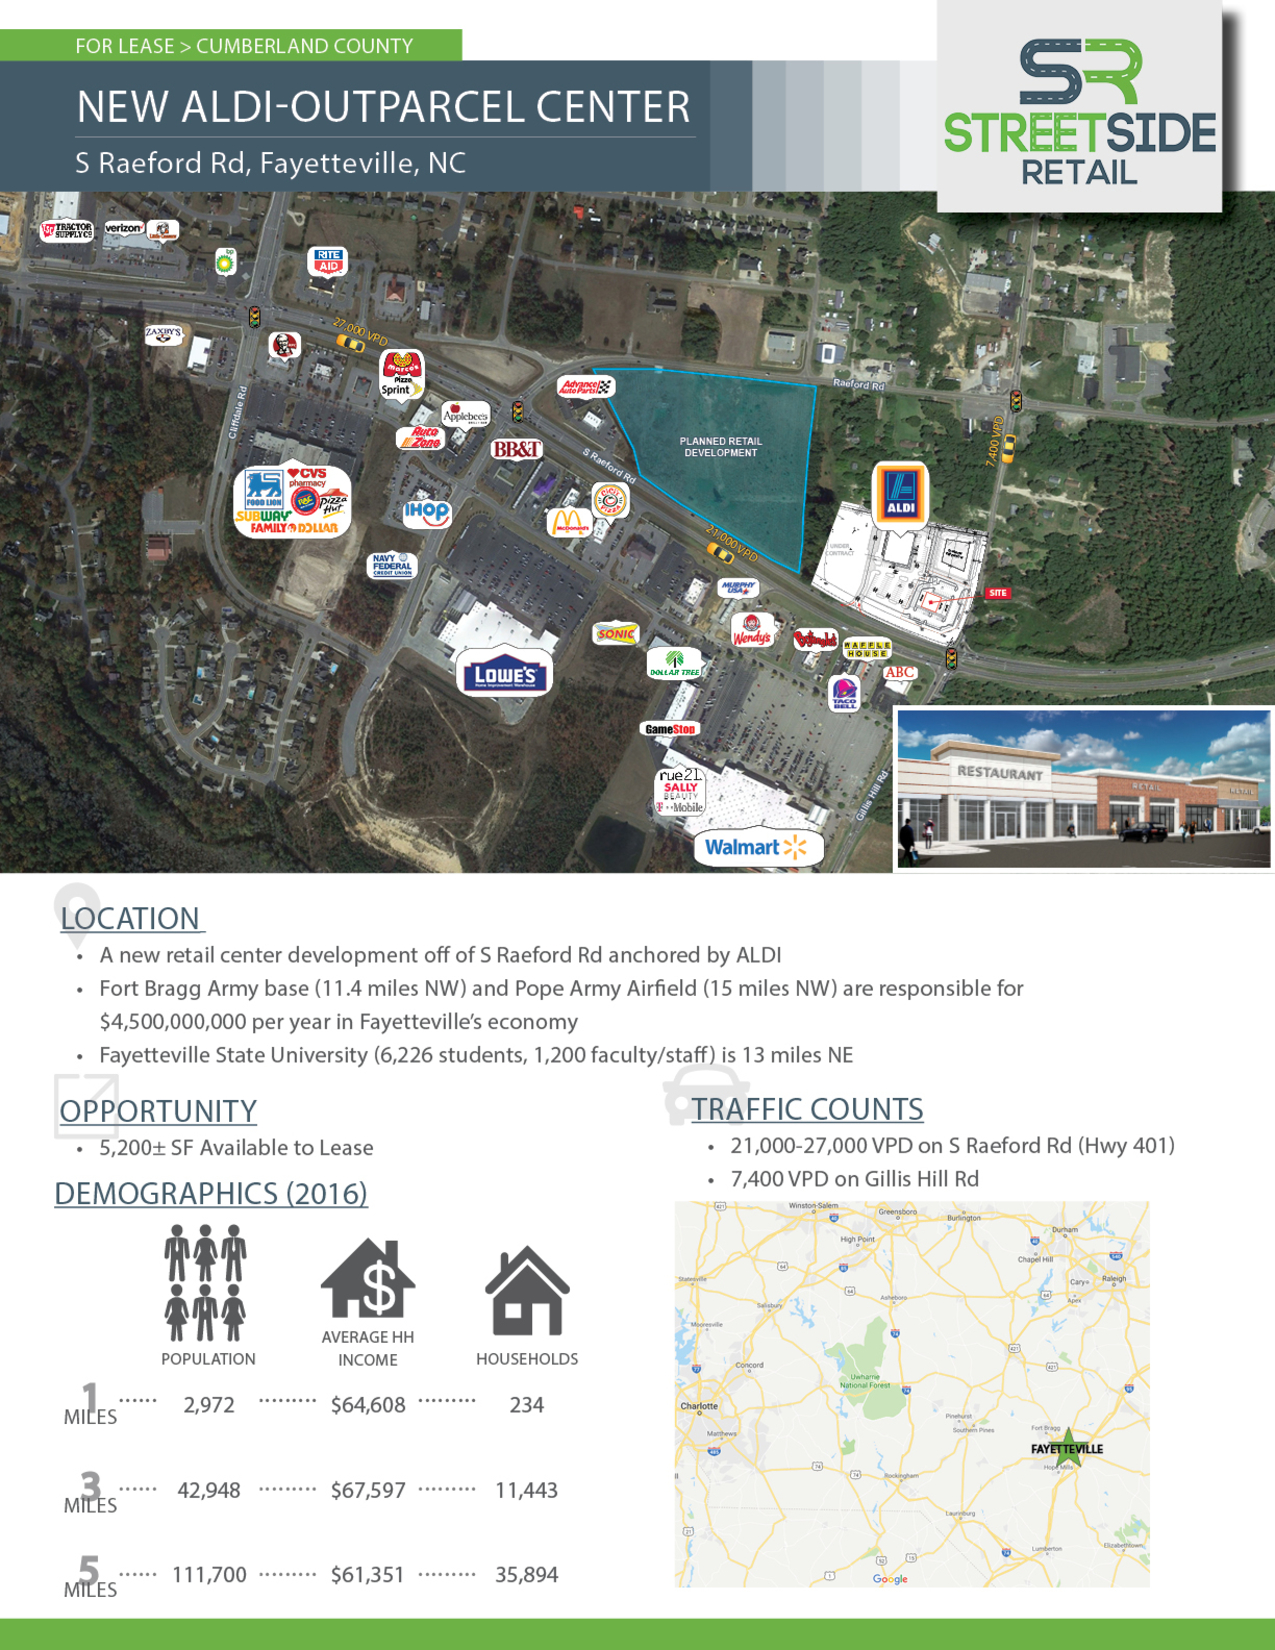 Fayetteville, NC - S Raeford Rd - Marketing Materials3